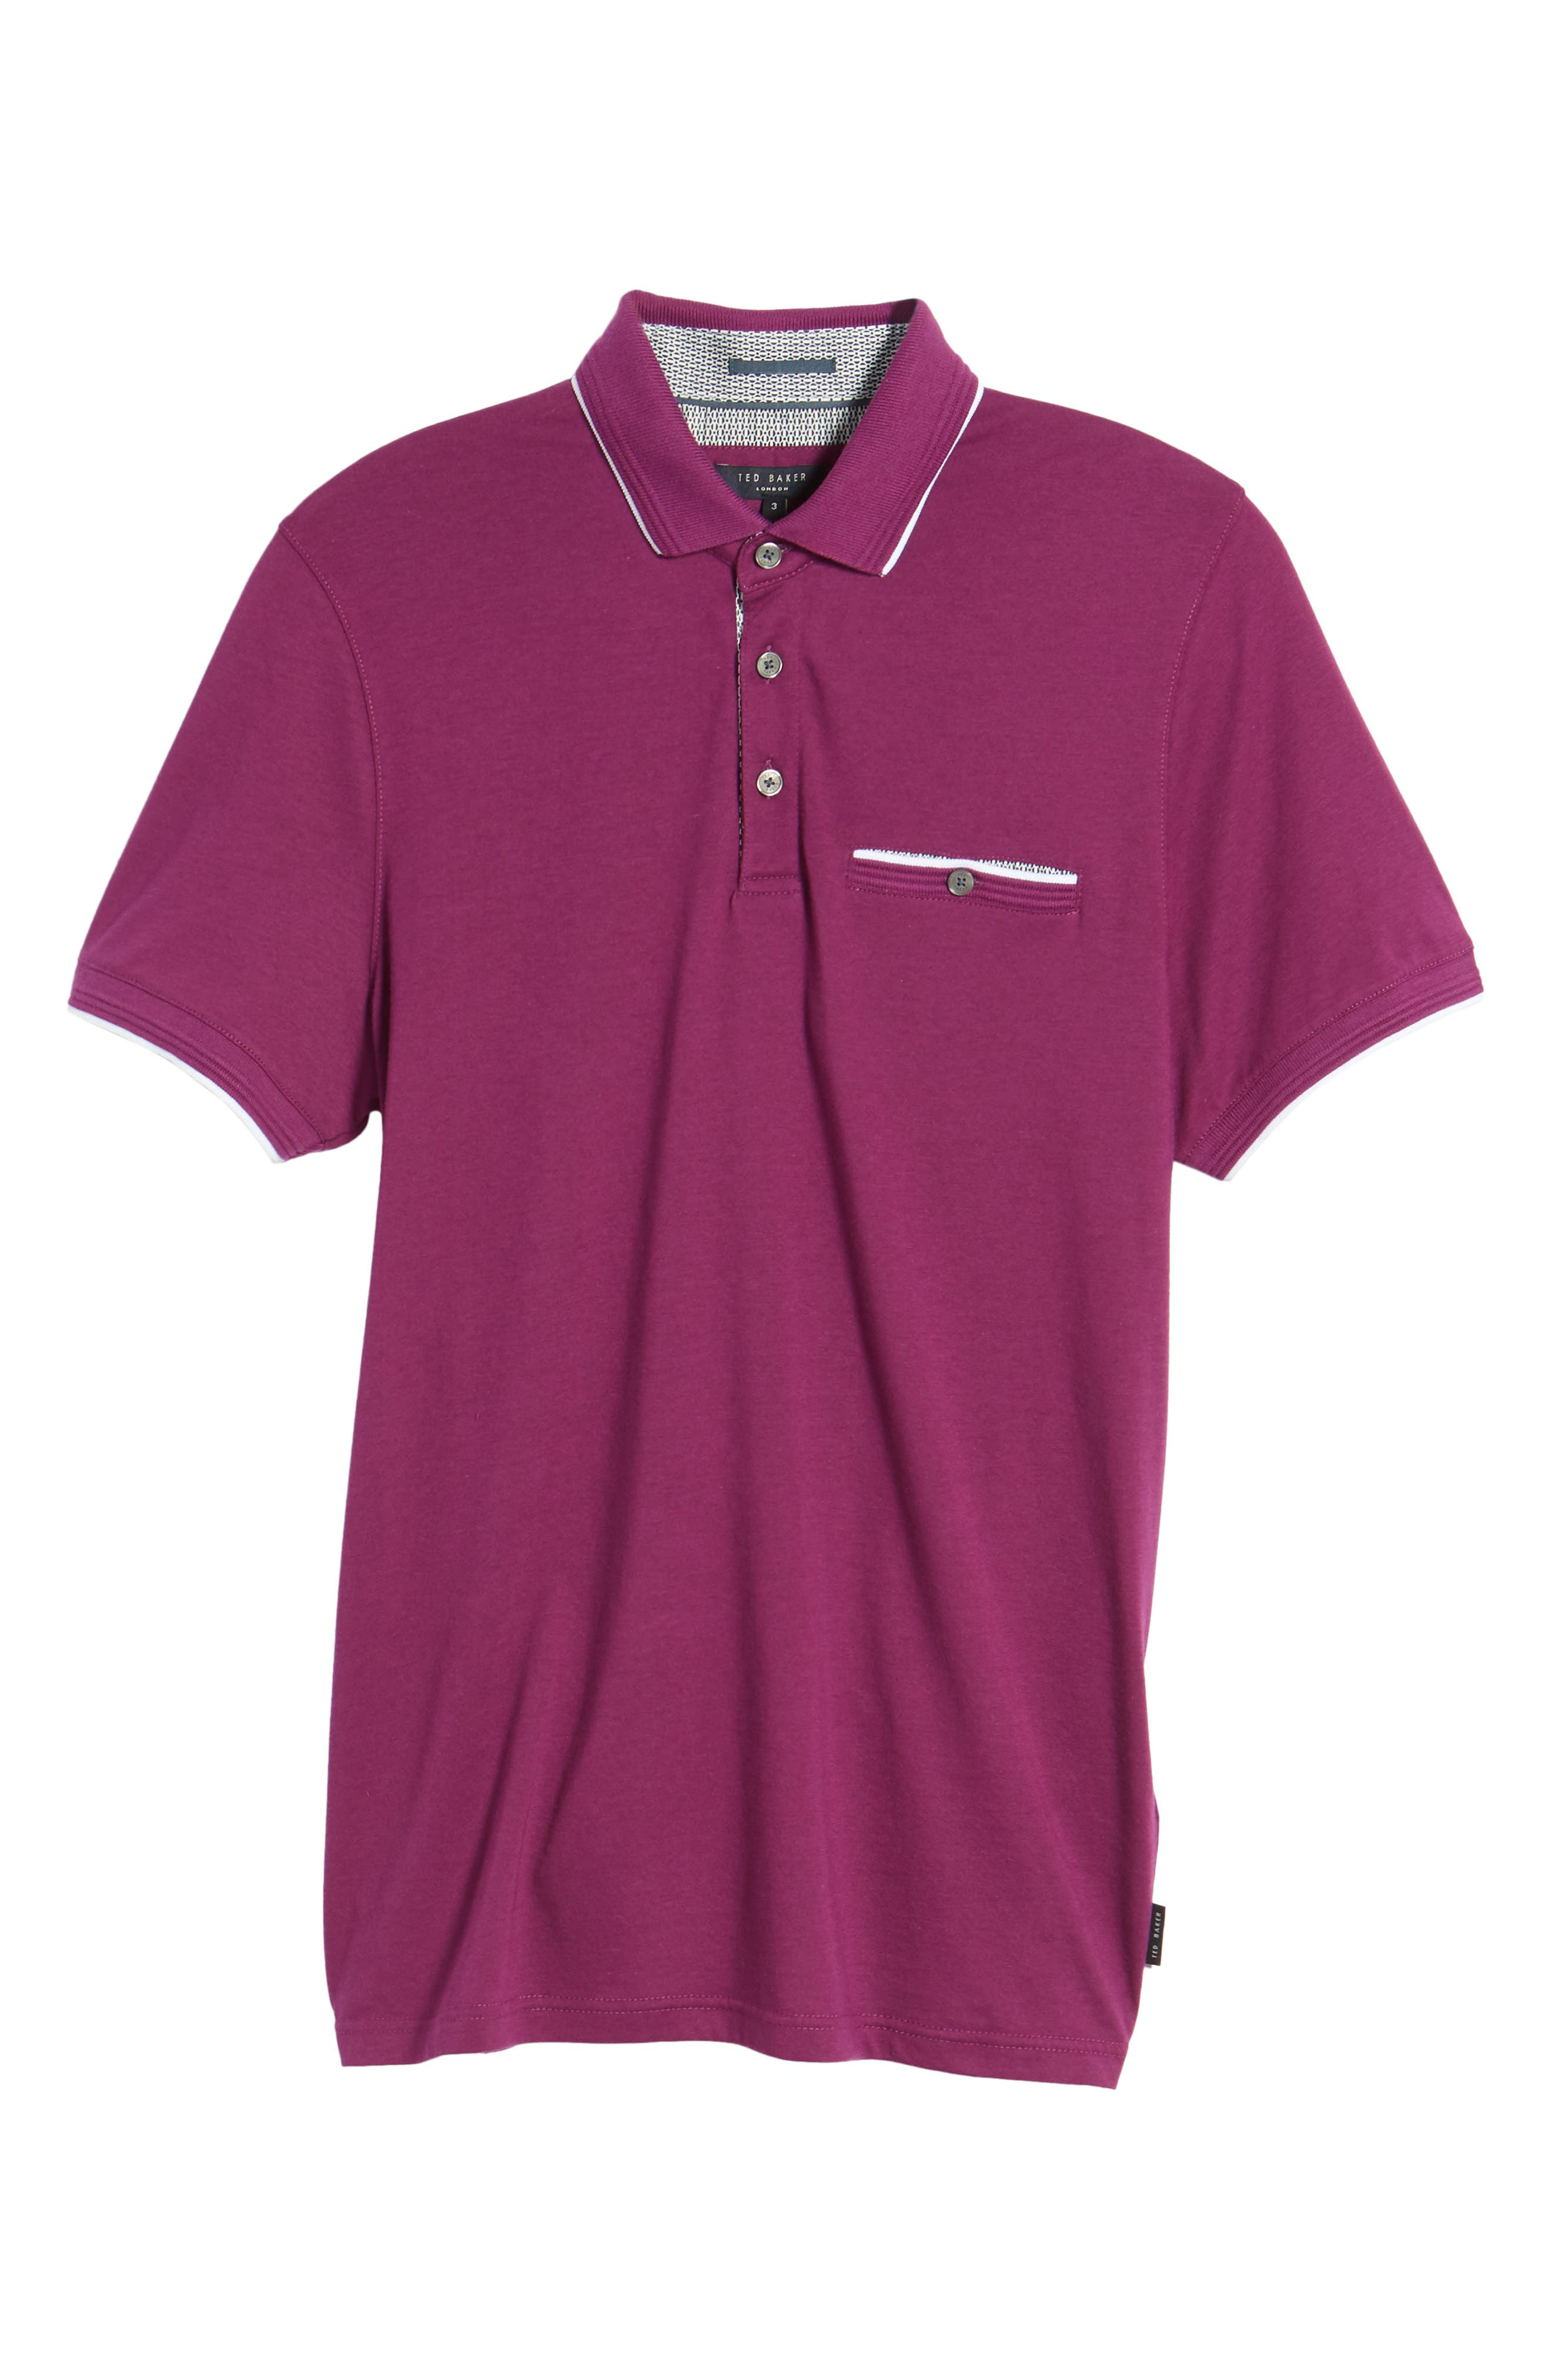 Alternate Image 1 Selected - Ted Baker London Derry Modern Slim Fit Polo